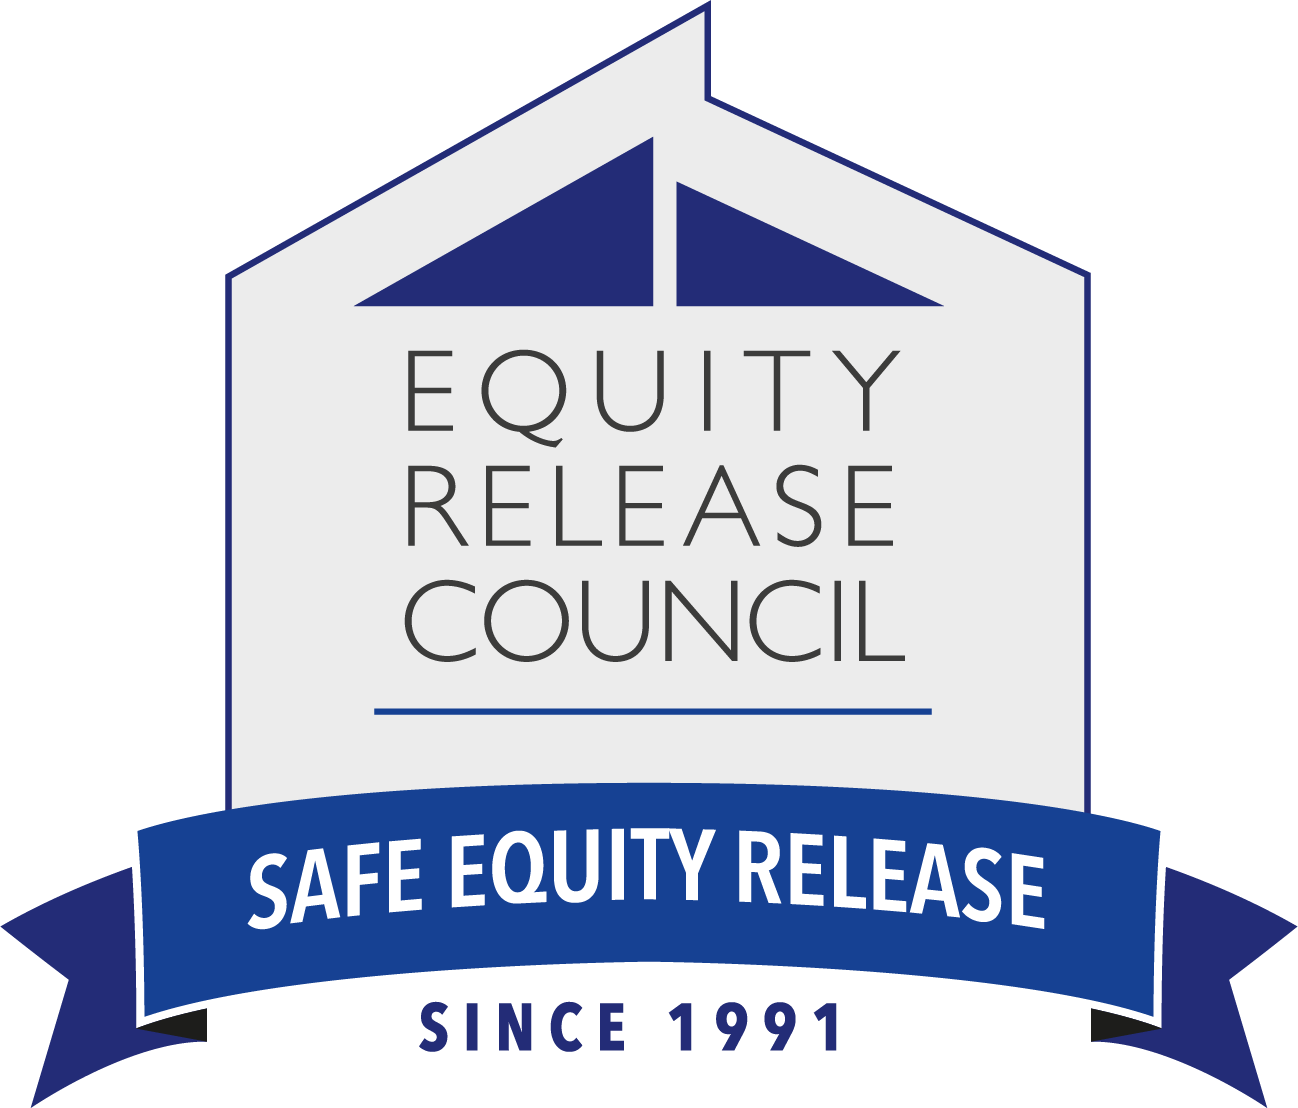 home equity release council